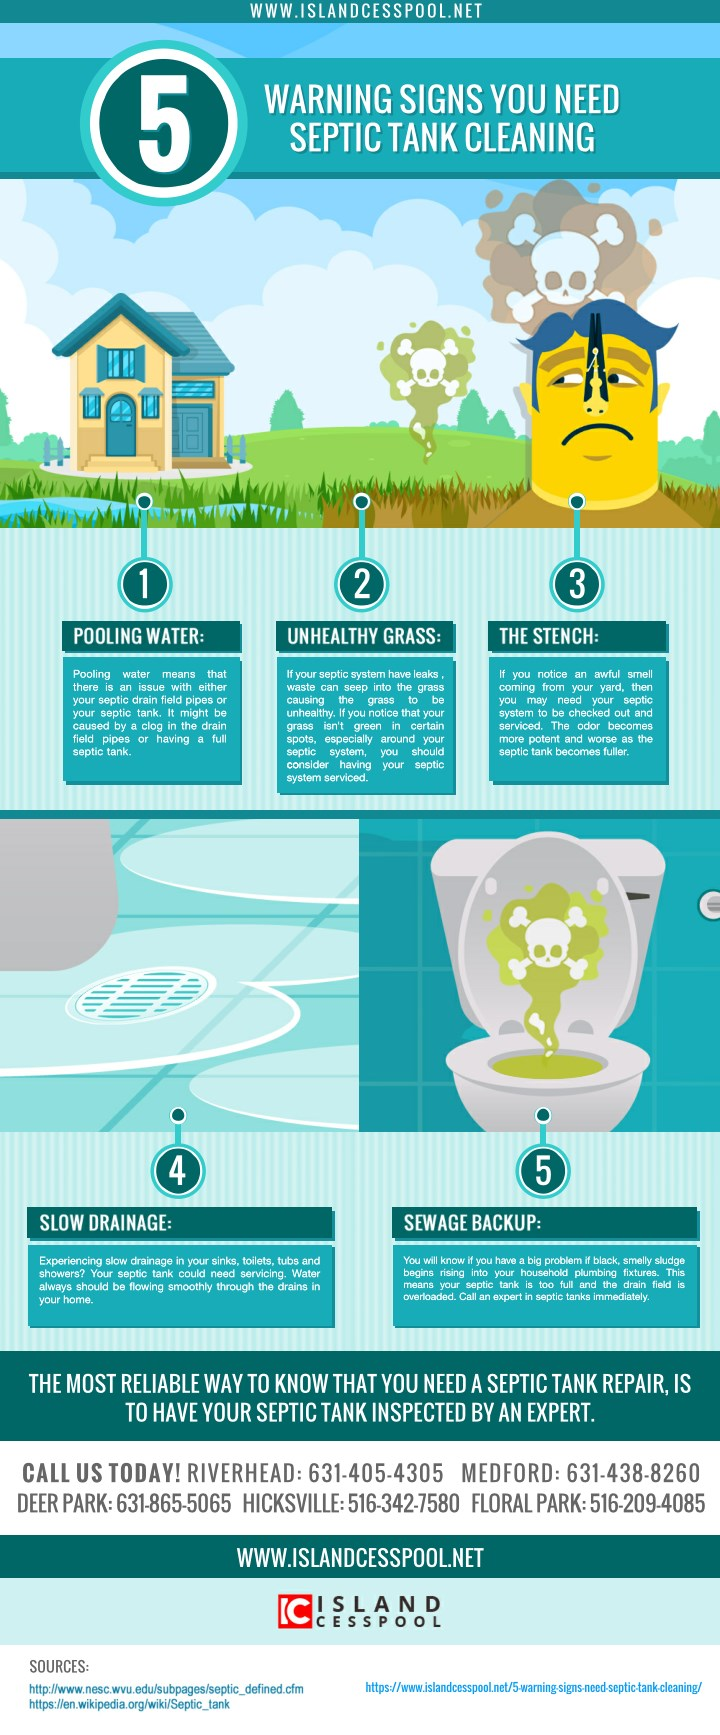 PPT - 5 Warning Signs You Need Septic Tank Cleaning PowerPoint